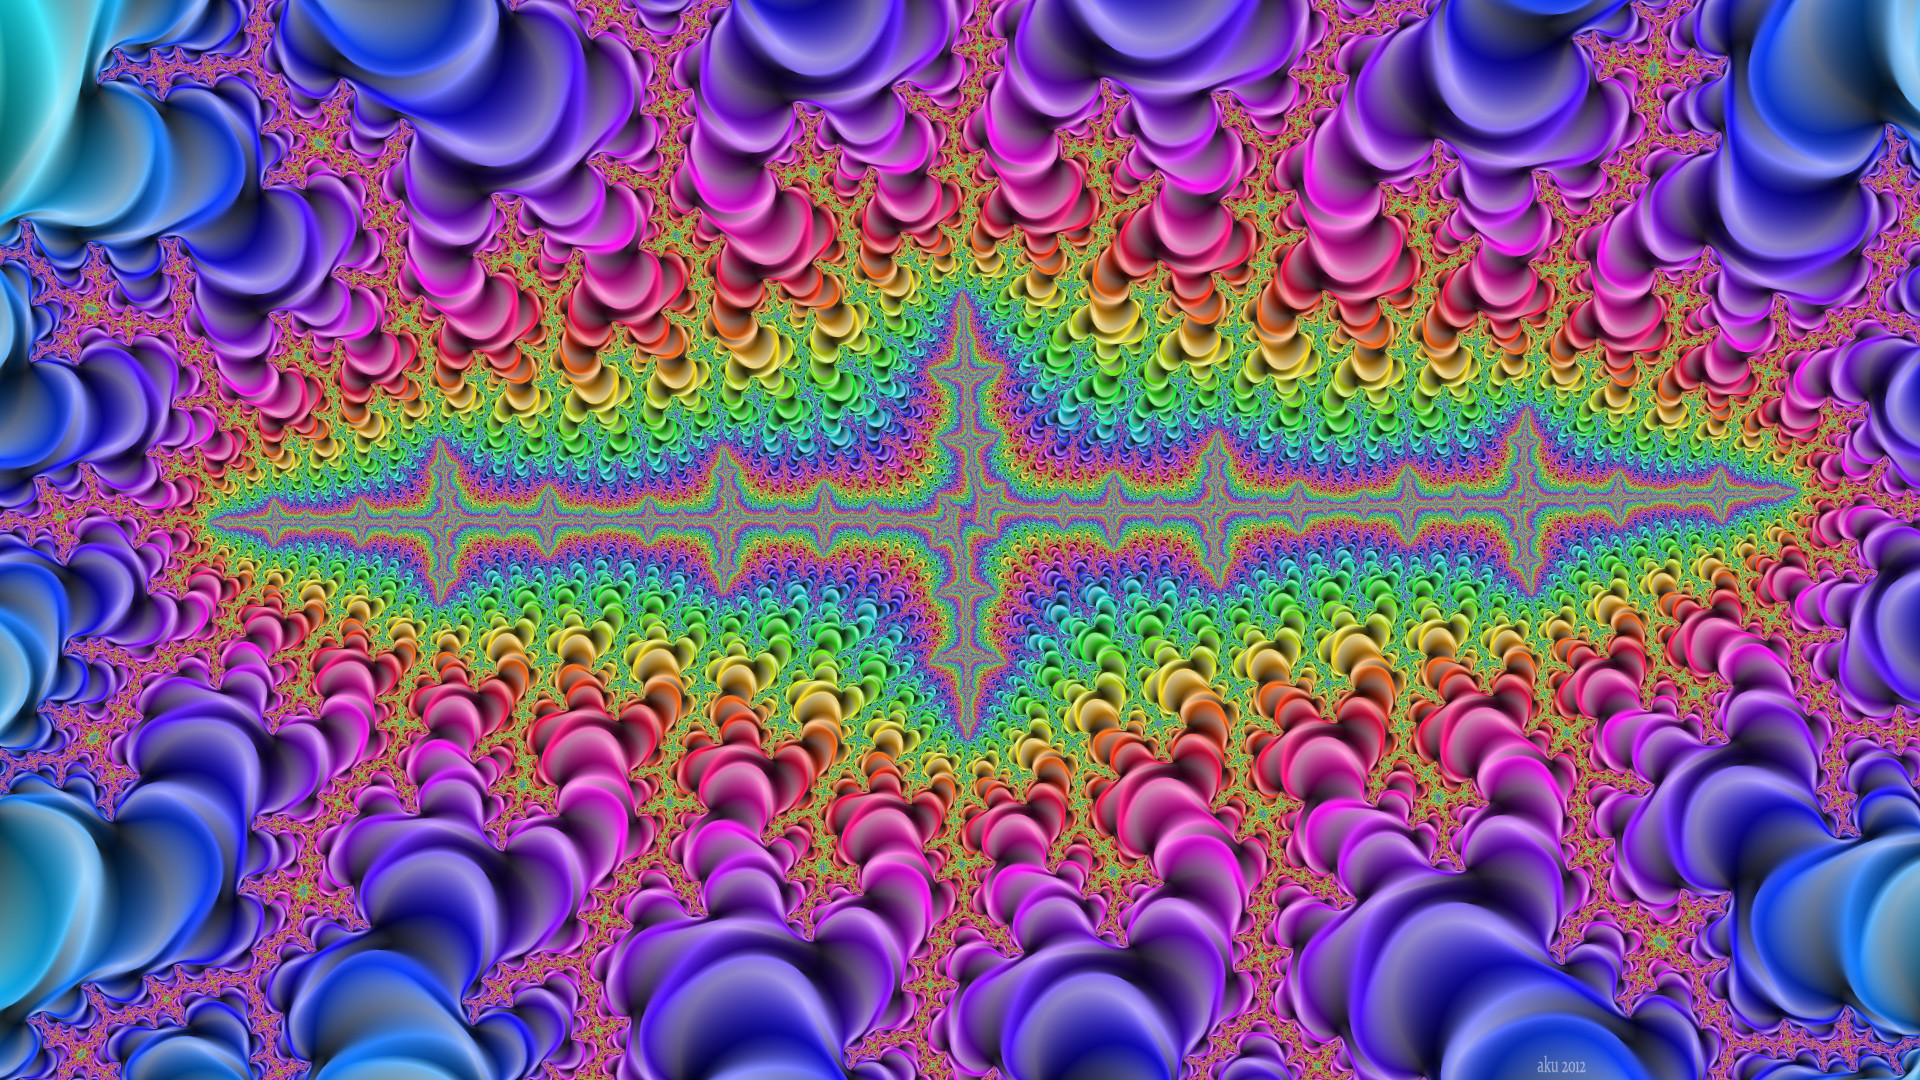 Artistic – Psychedelic Wallpaper